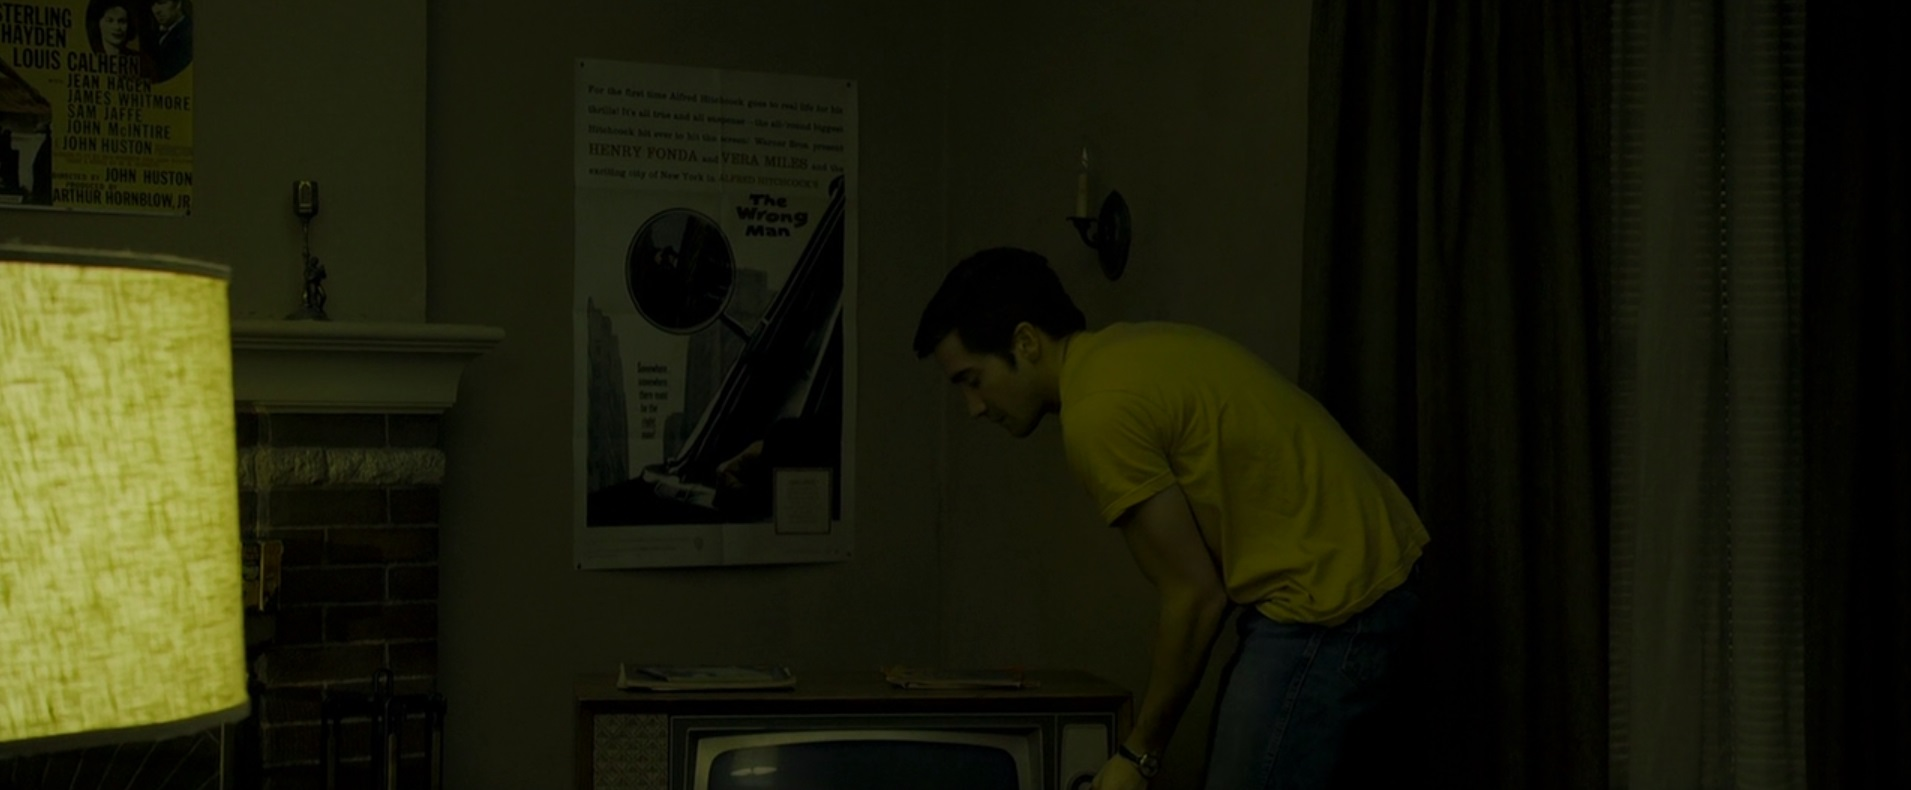 Zodiac film still